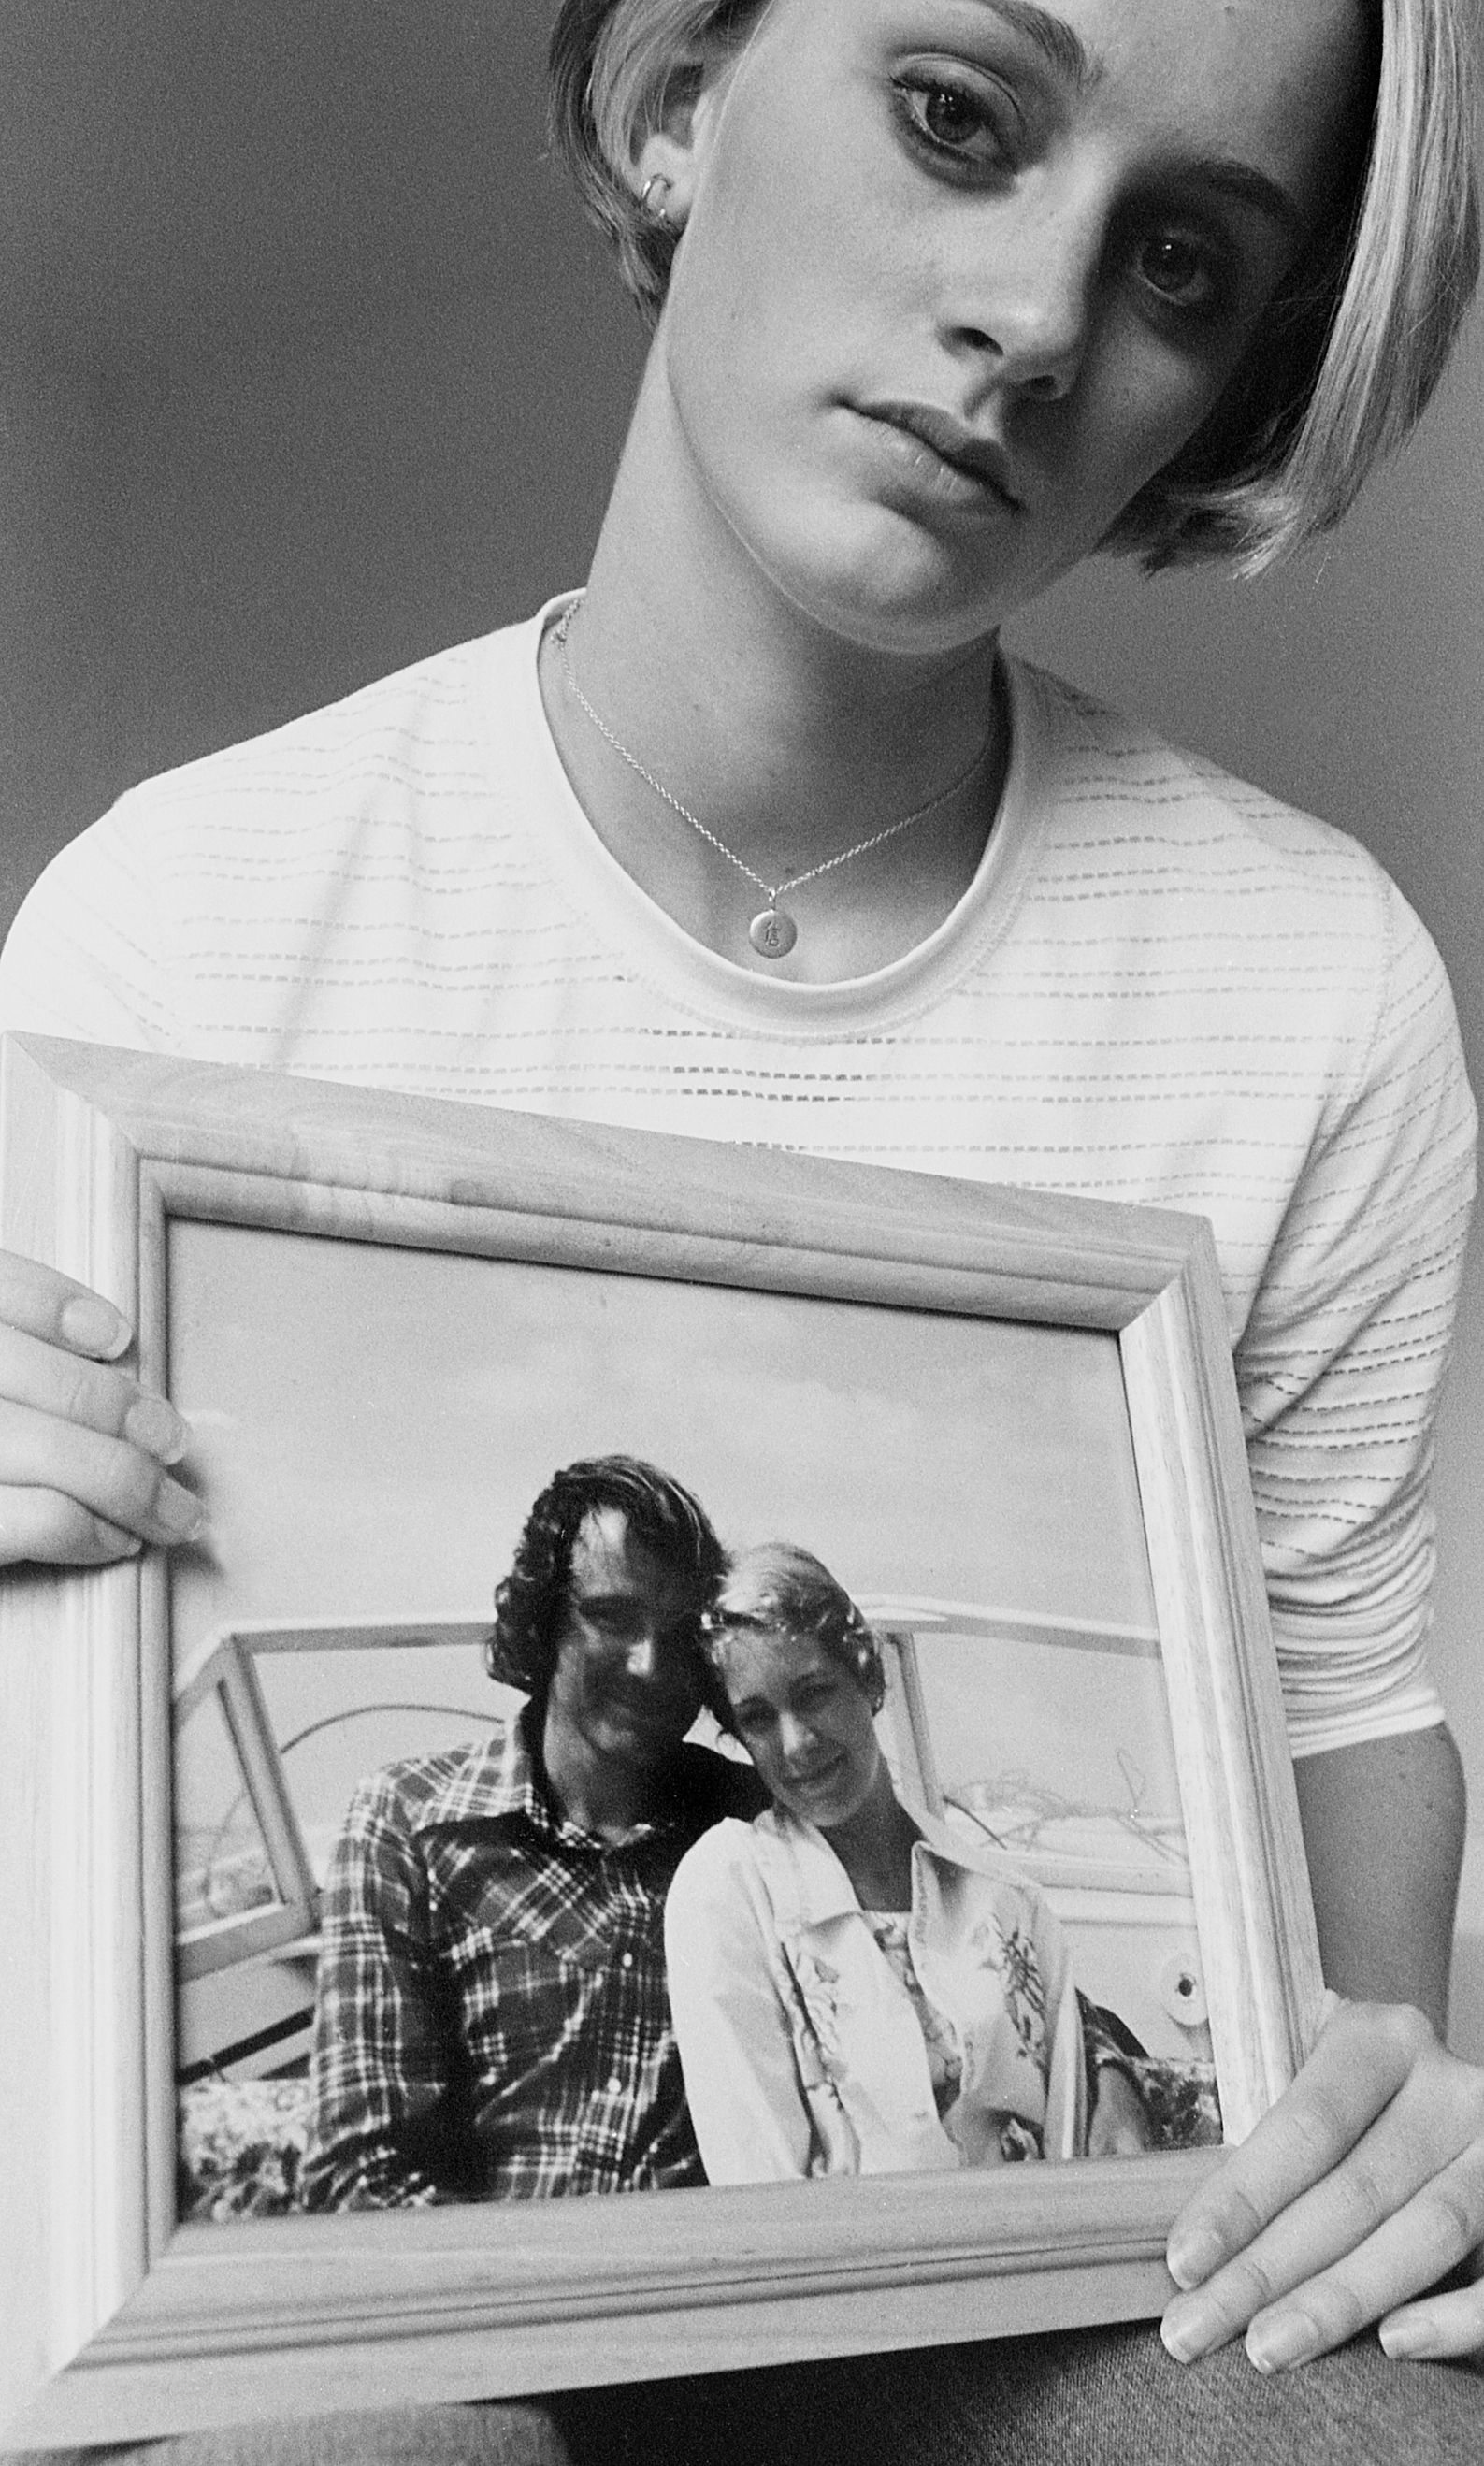 Crystal, holding photo of the honeymoon after the divorce but before the death, 2019/2001